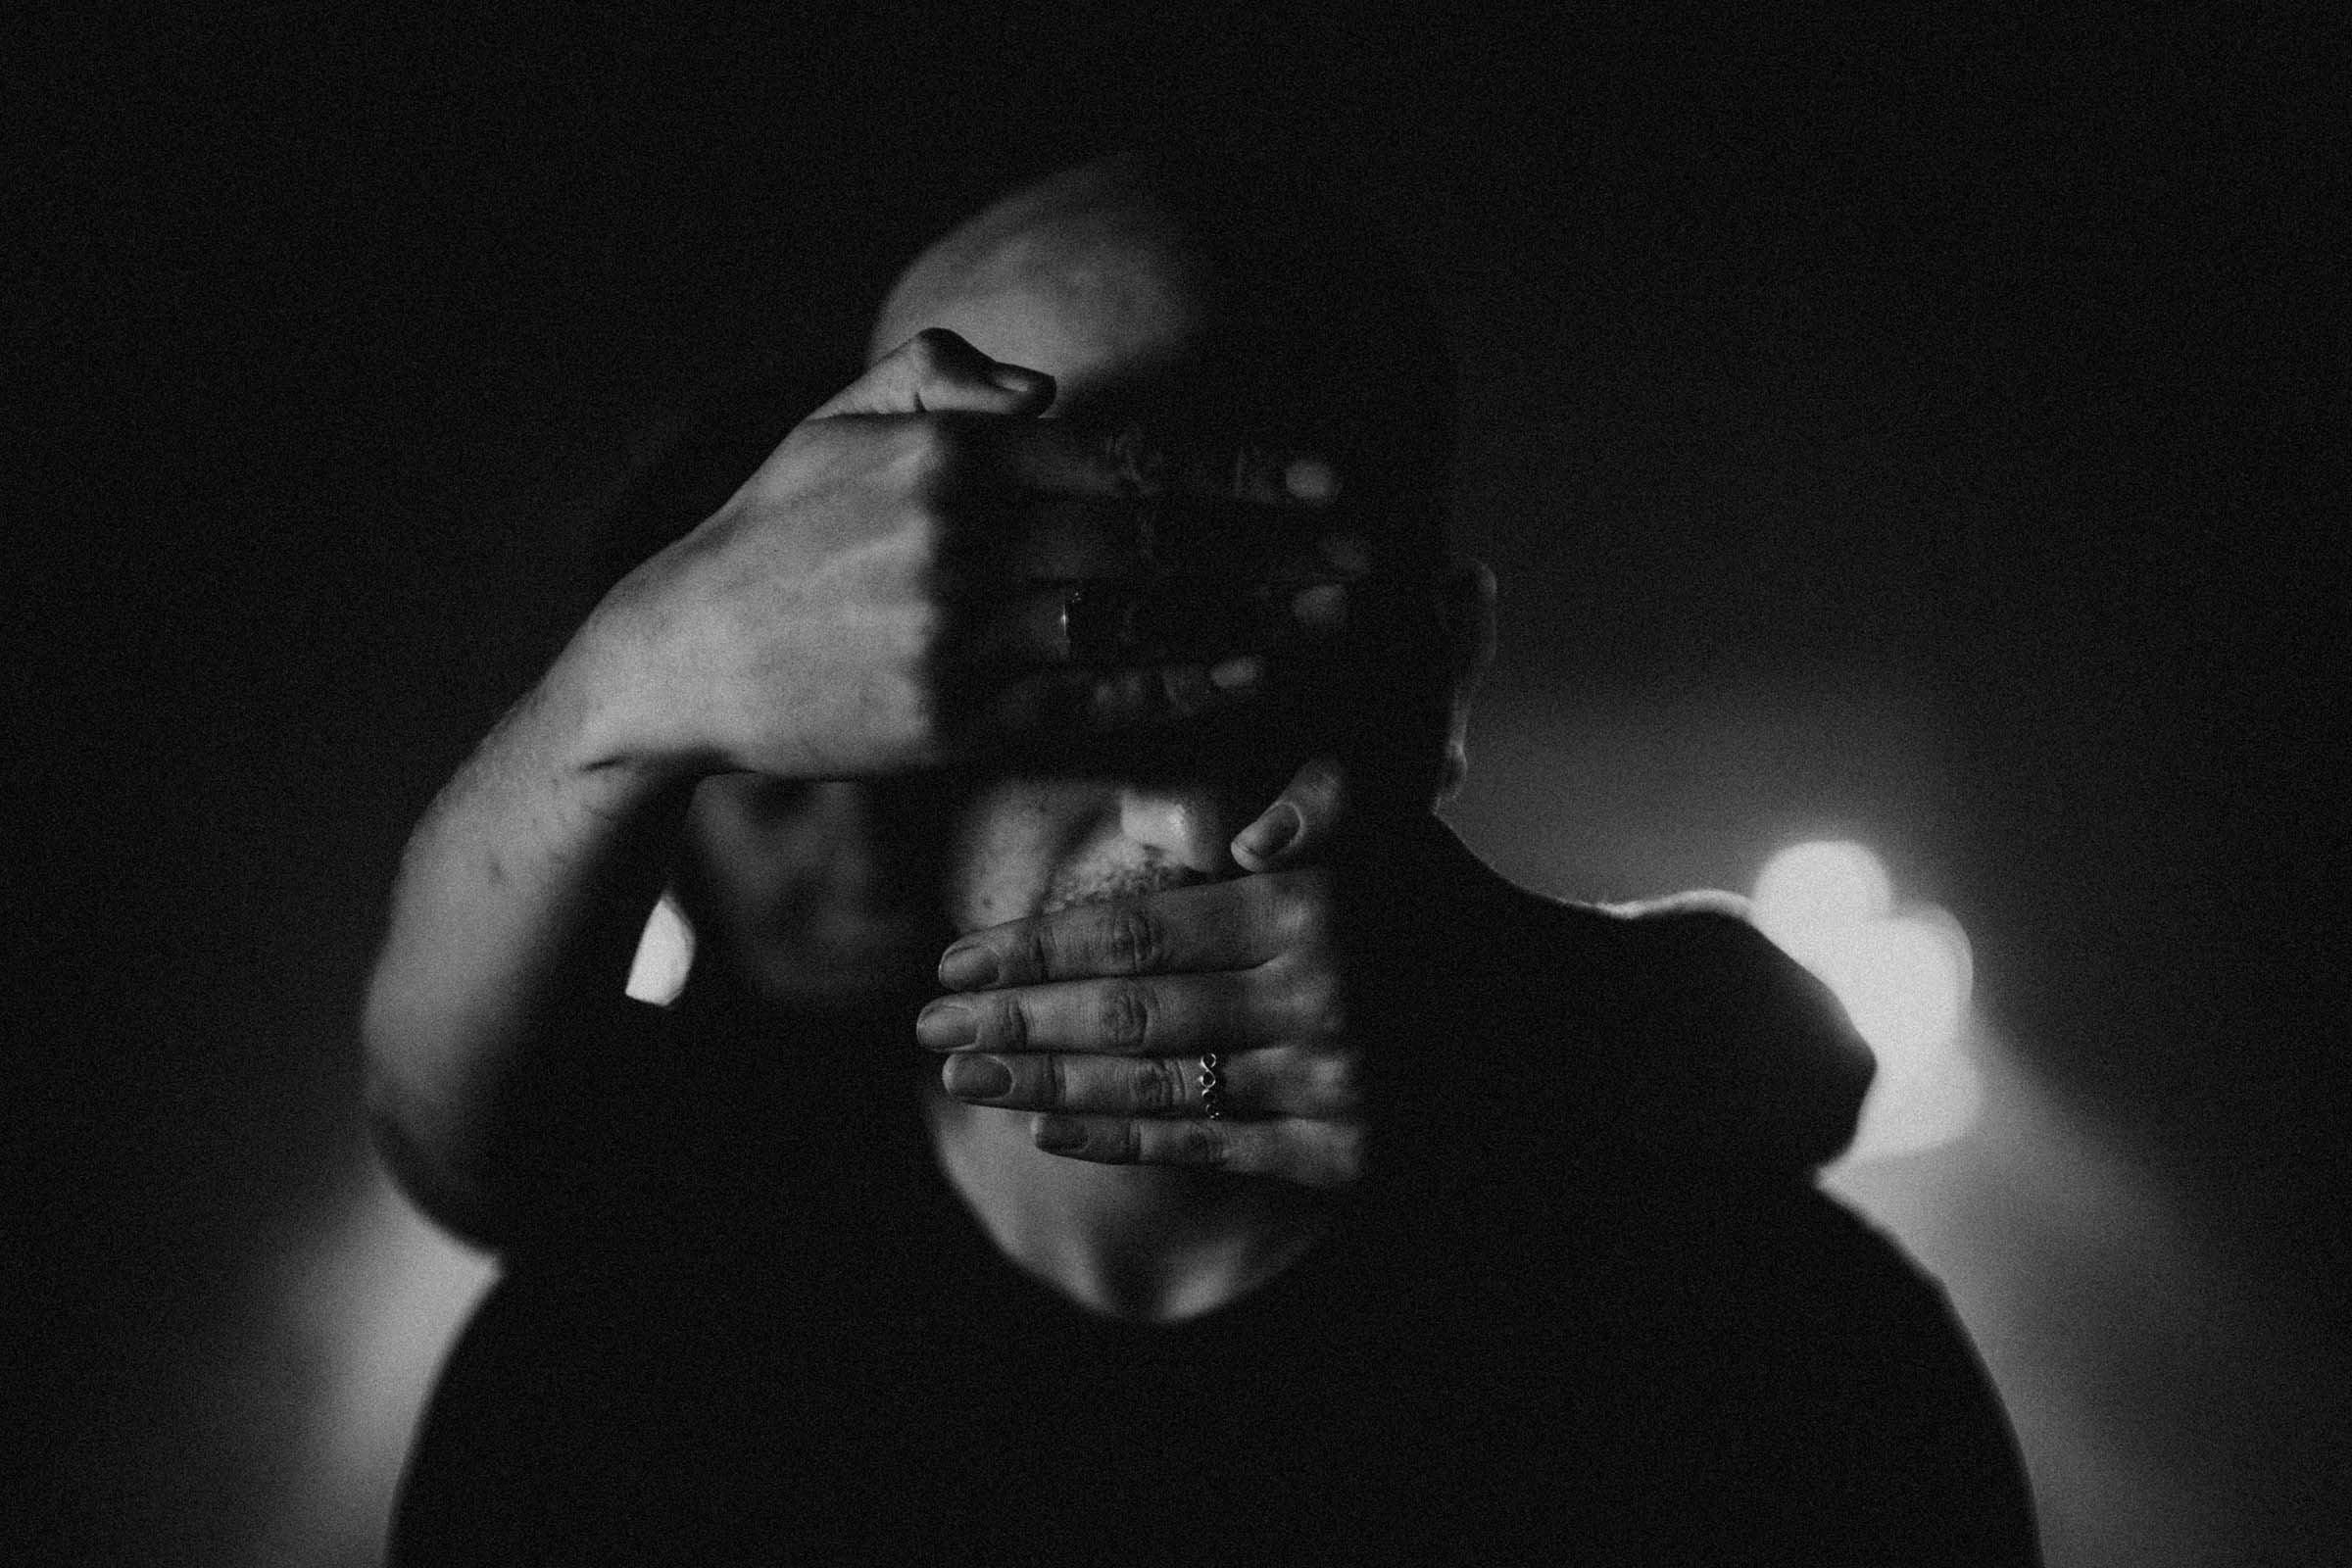 moody black and white photo grooms face covered by hands